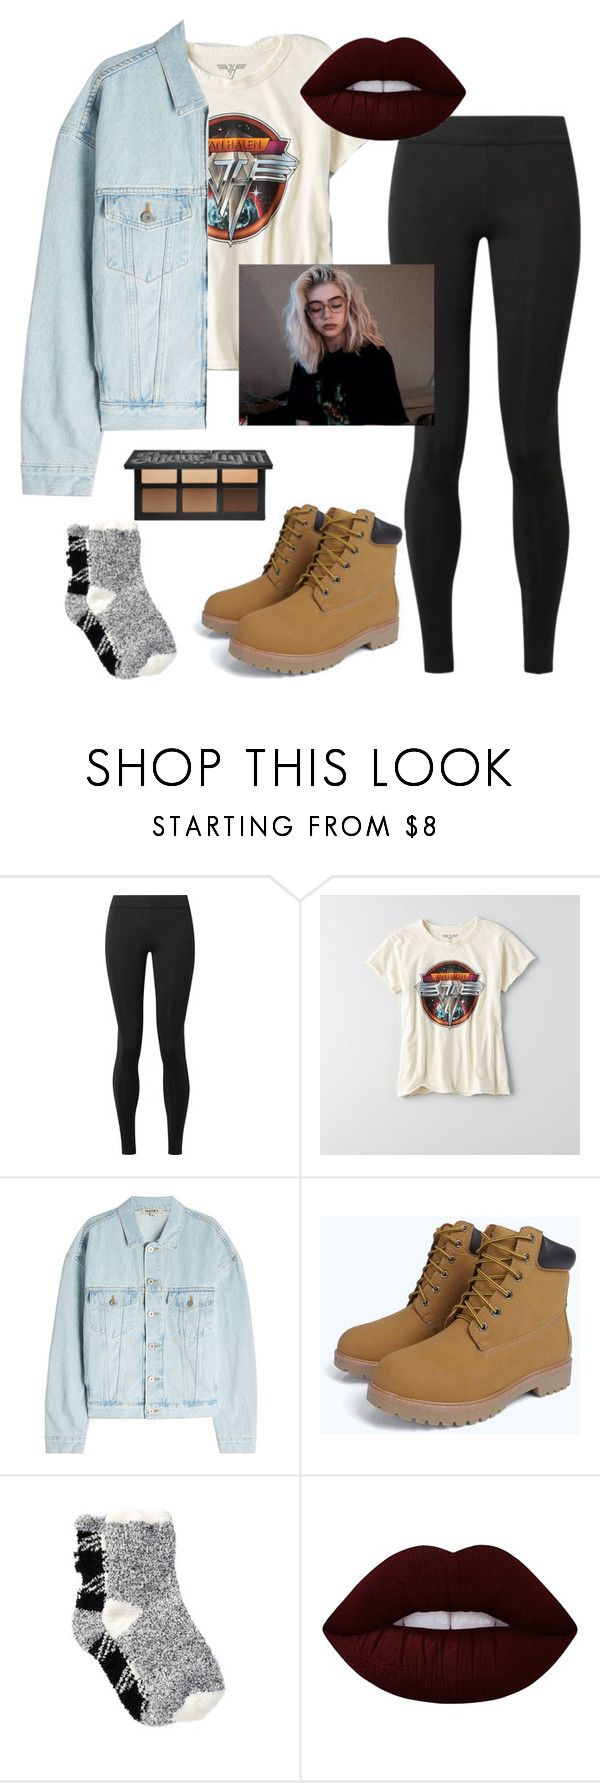 """""""Throw back thrift shop"""" by faith-32 on Polyvore featuring The Row, American Eagle Outfitters, Yeezy by Kanye West, Free Press and Lime Crime"""